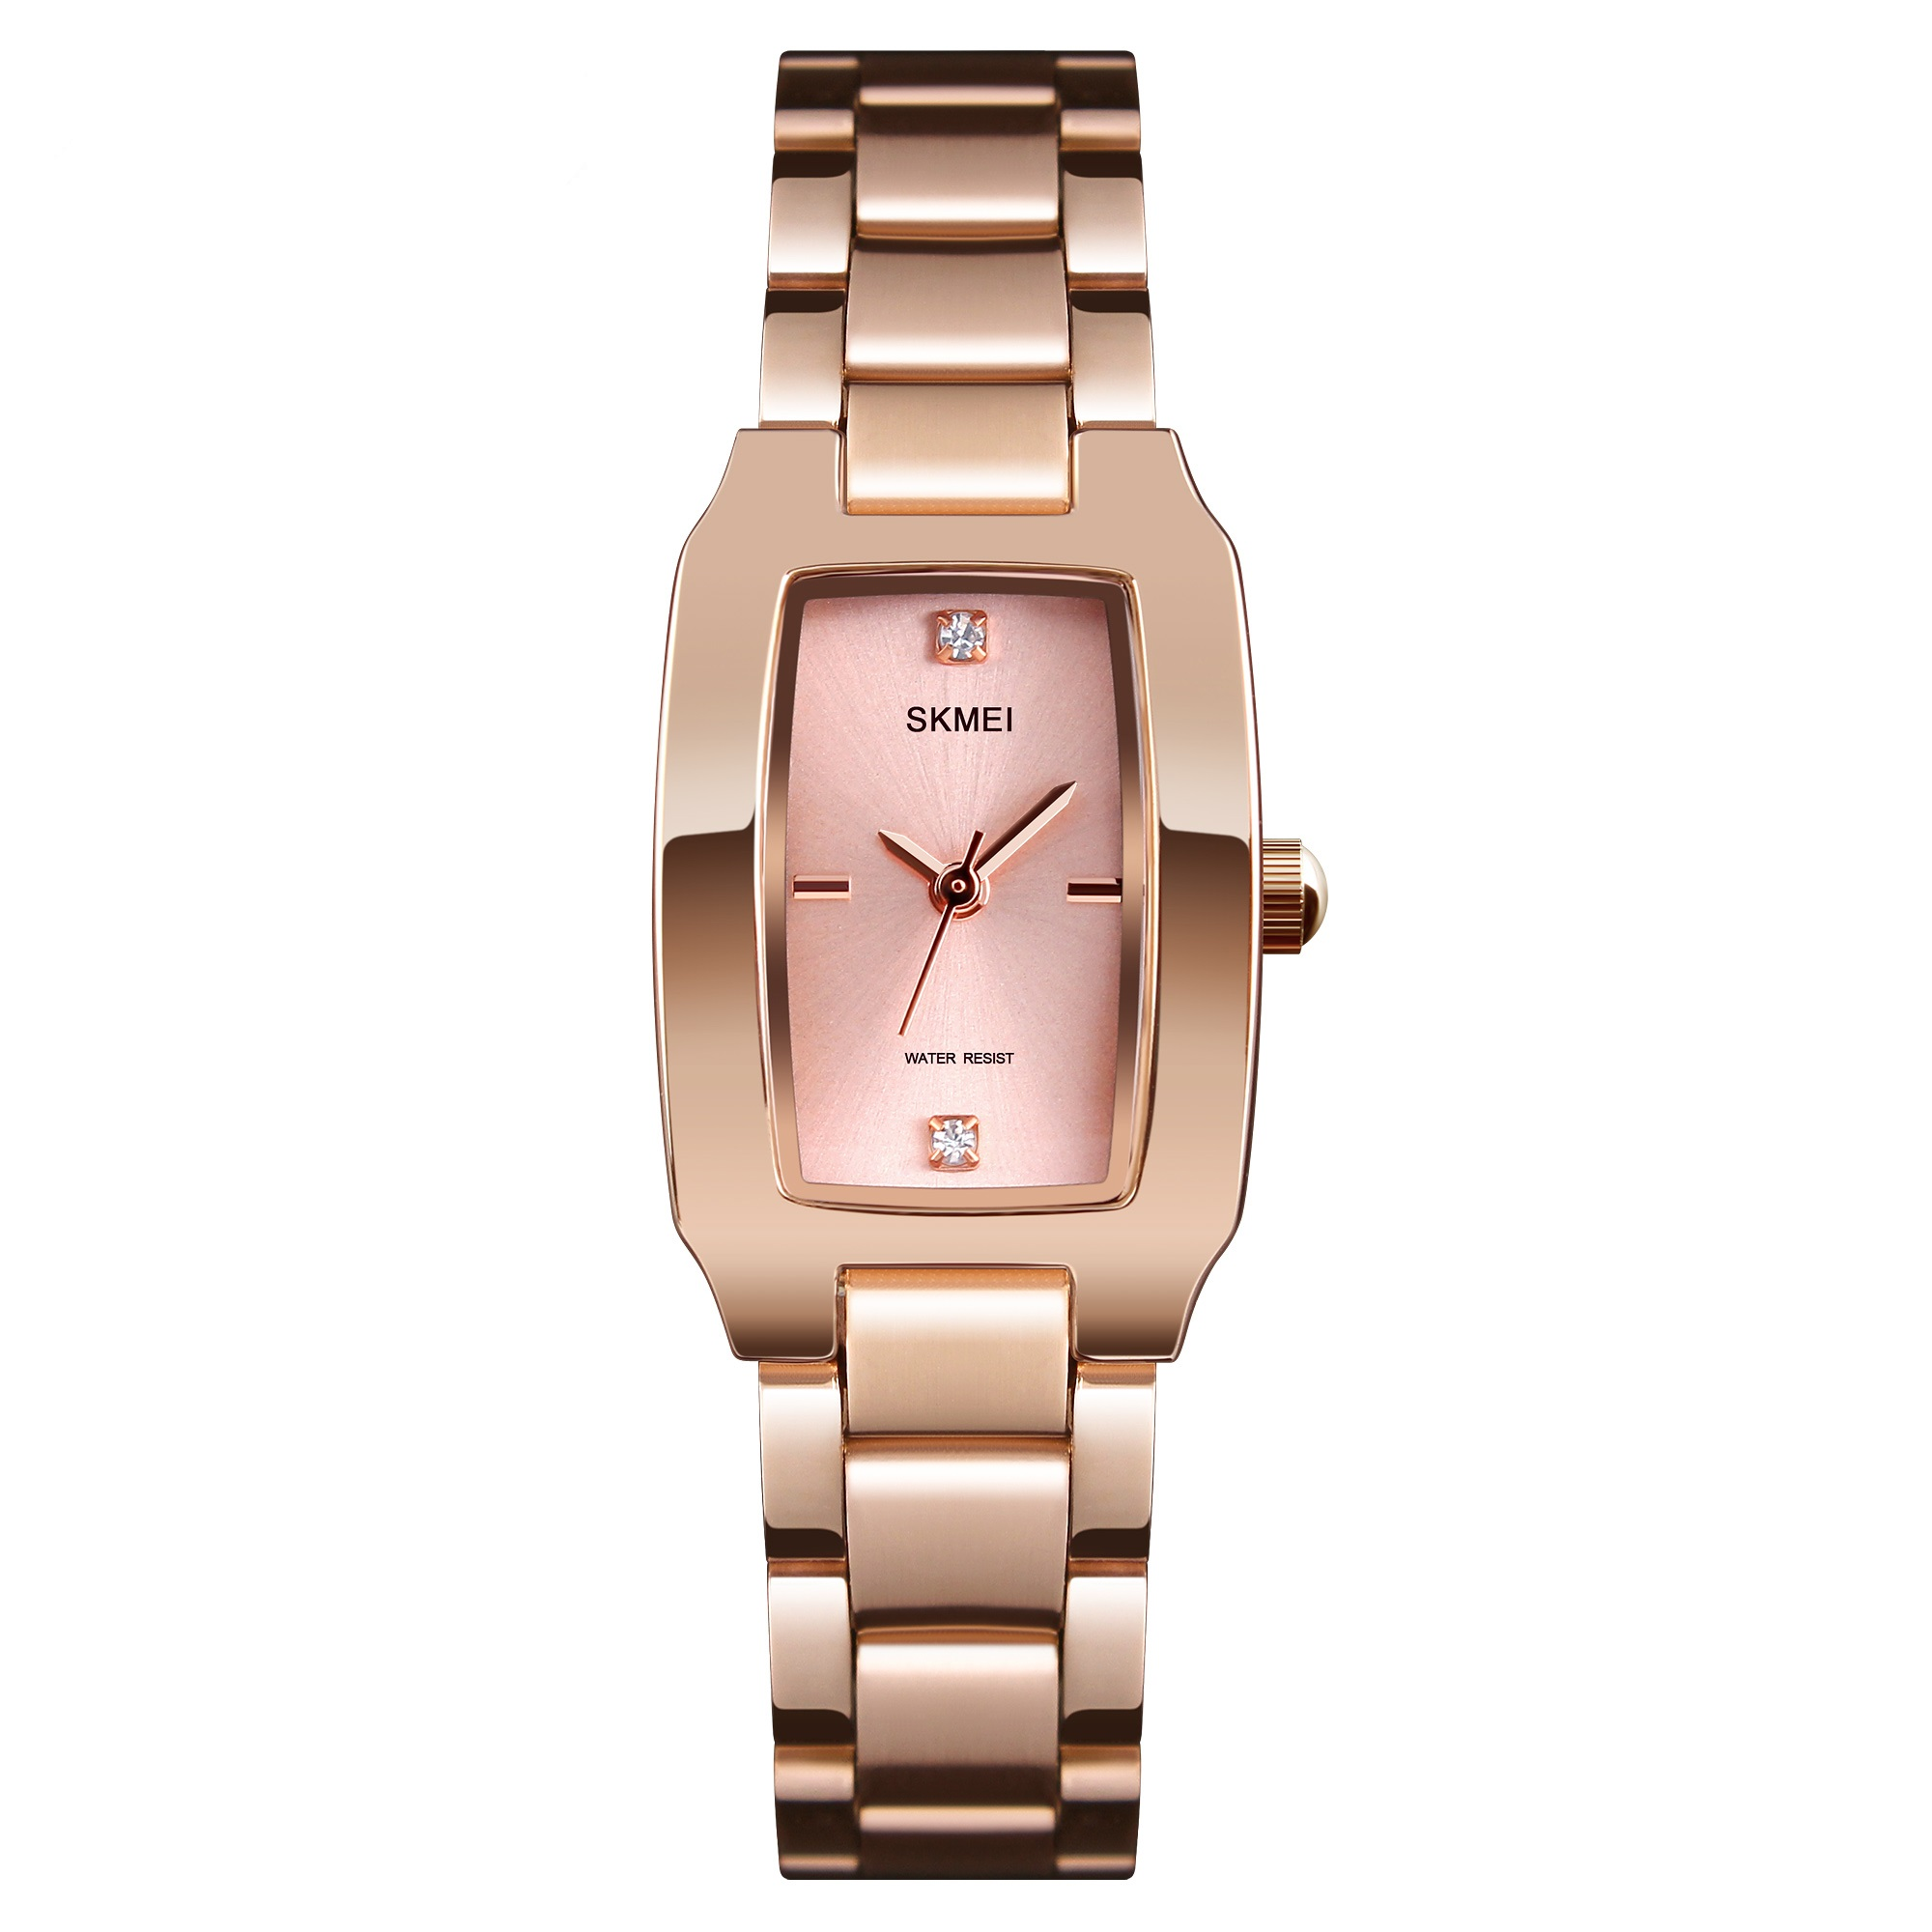 Ladies Watch Luxury Top Brand New Fashion Trending Alloy Stainless Steel Quartz Wristwatch Waterproof Shock Resistant